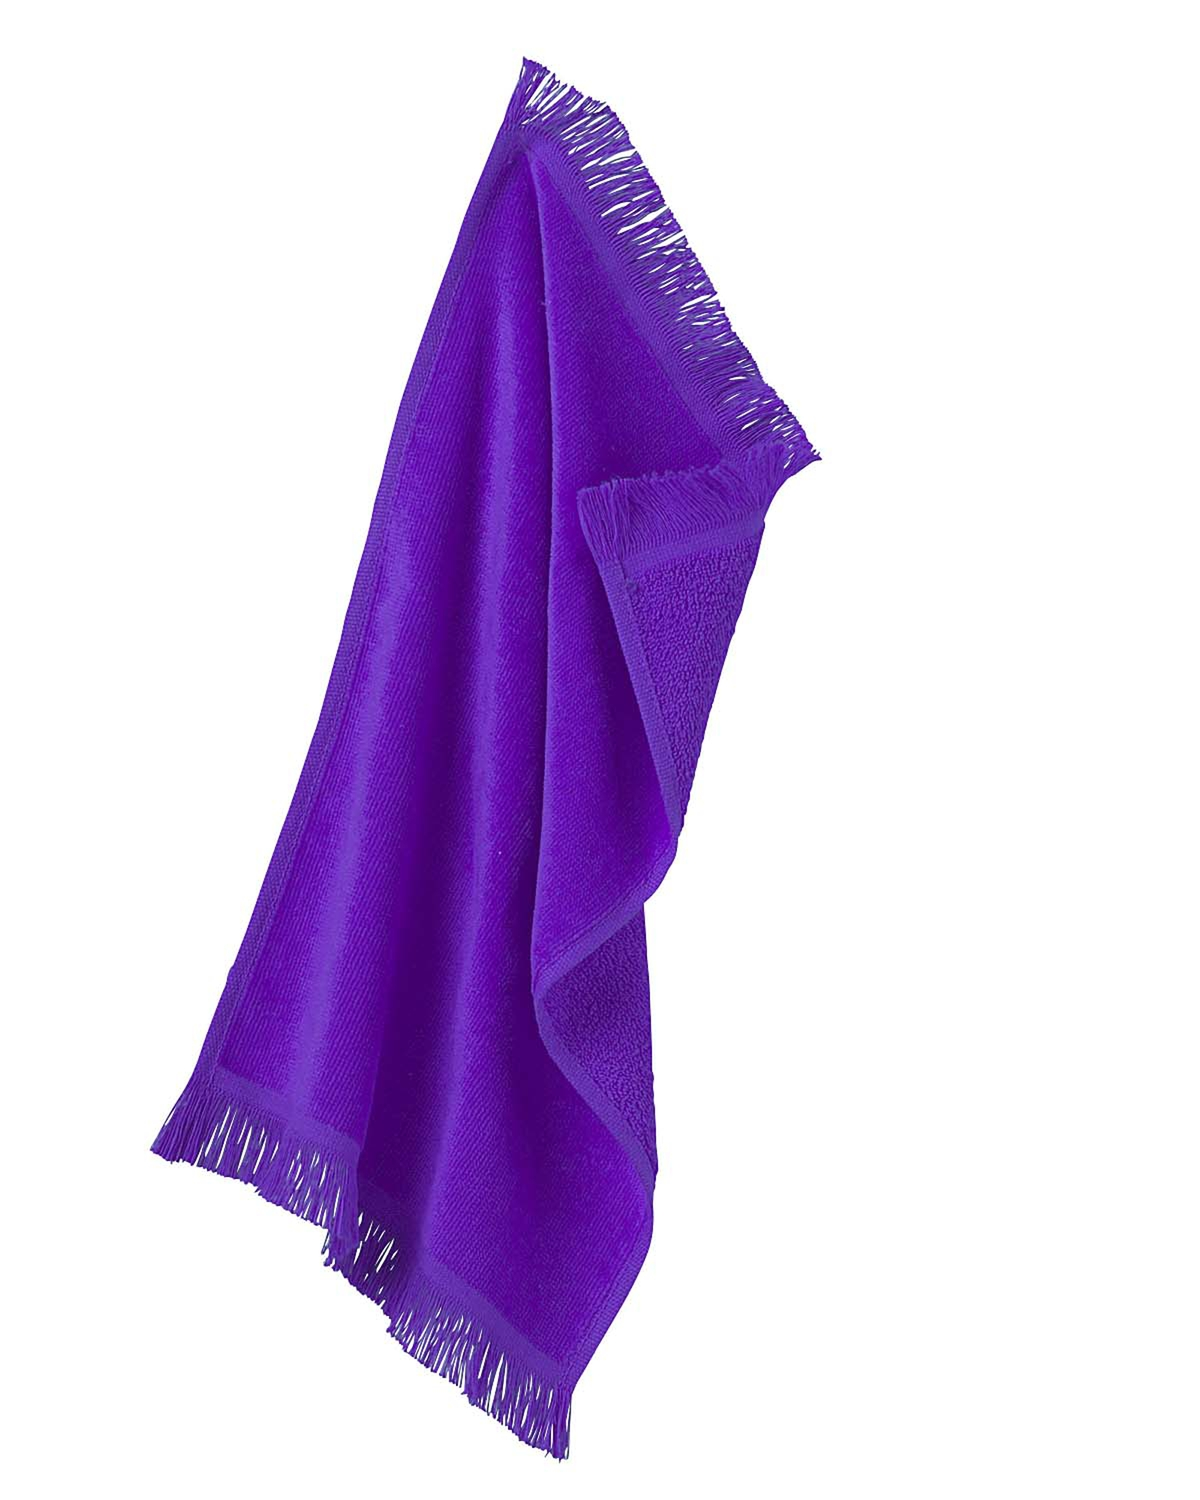 Anvil T101  Hemmed Spirit Towel